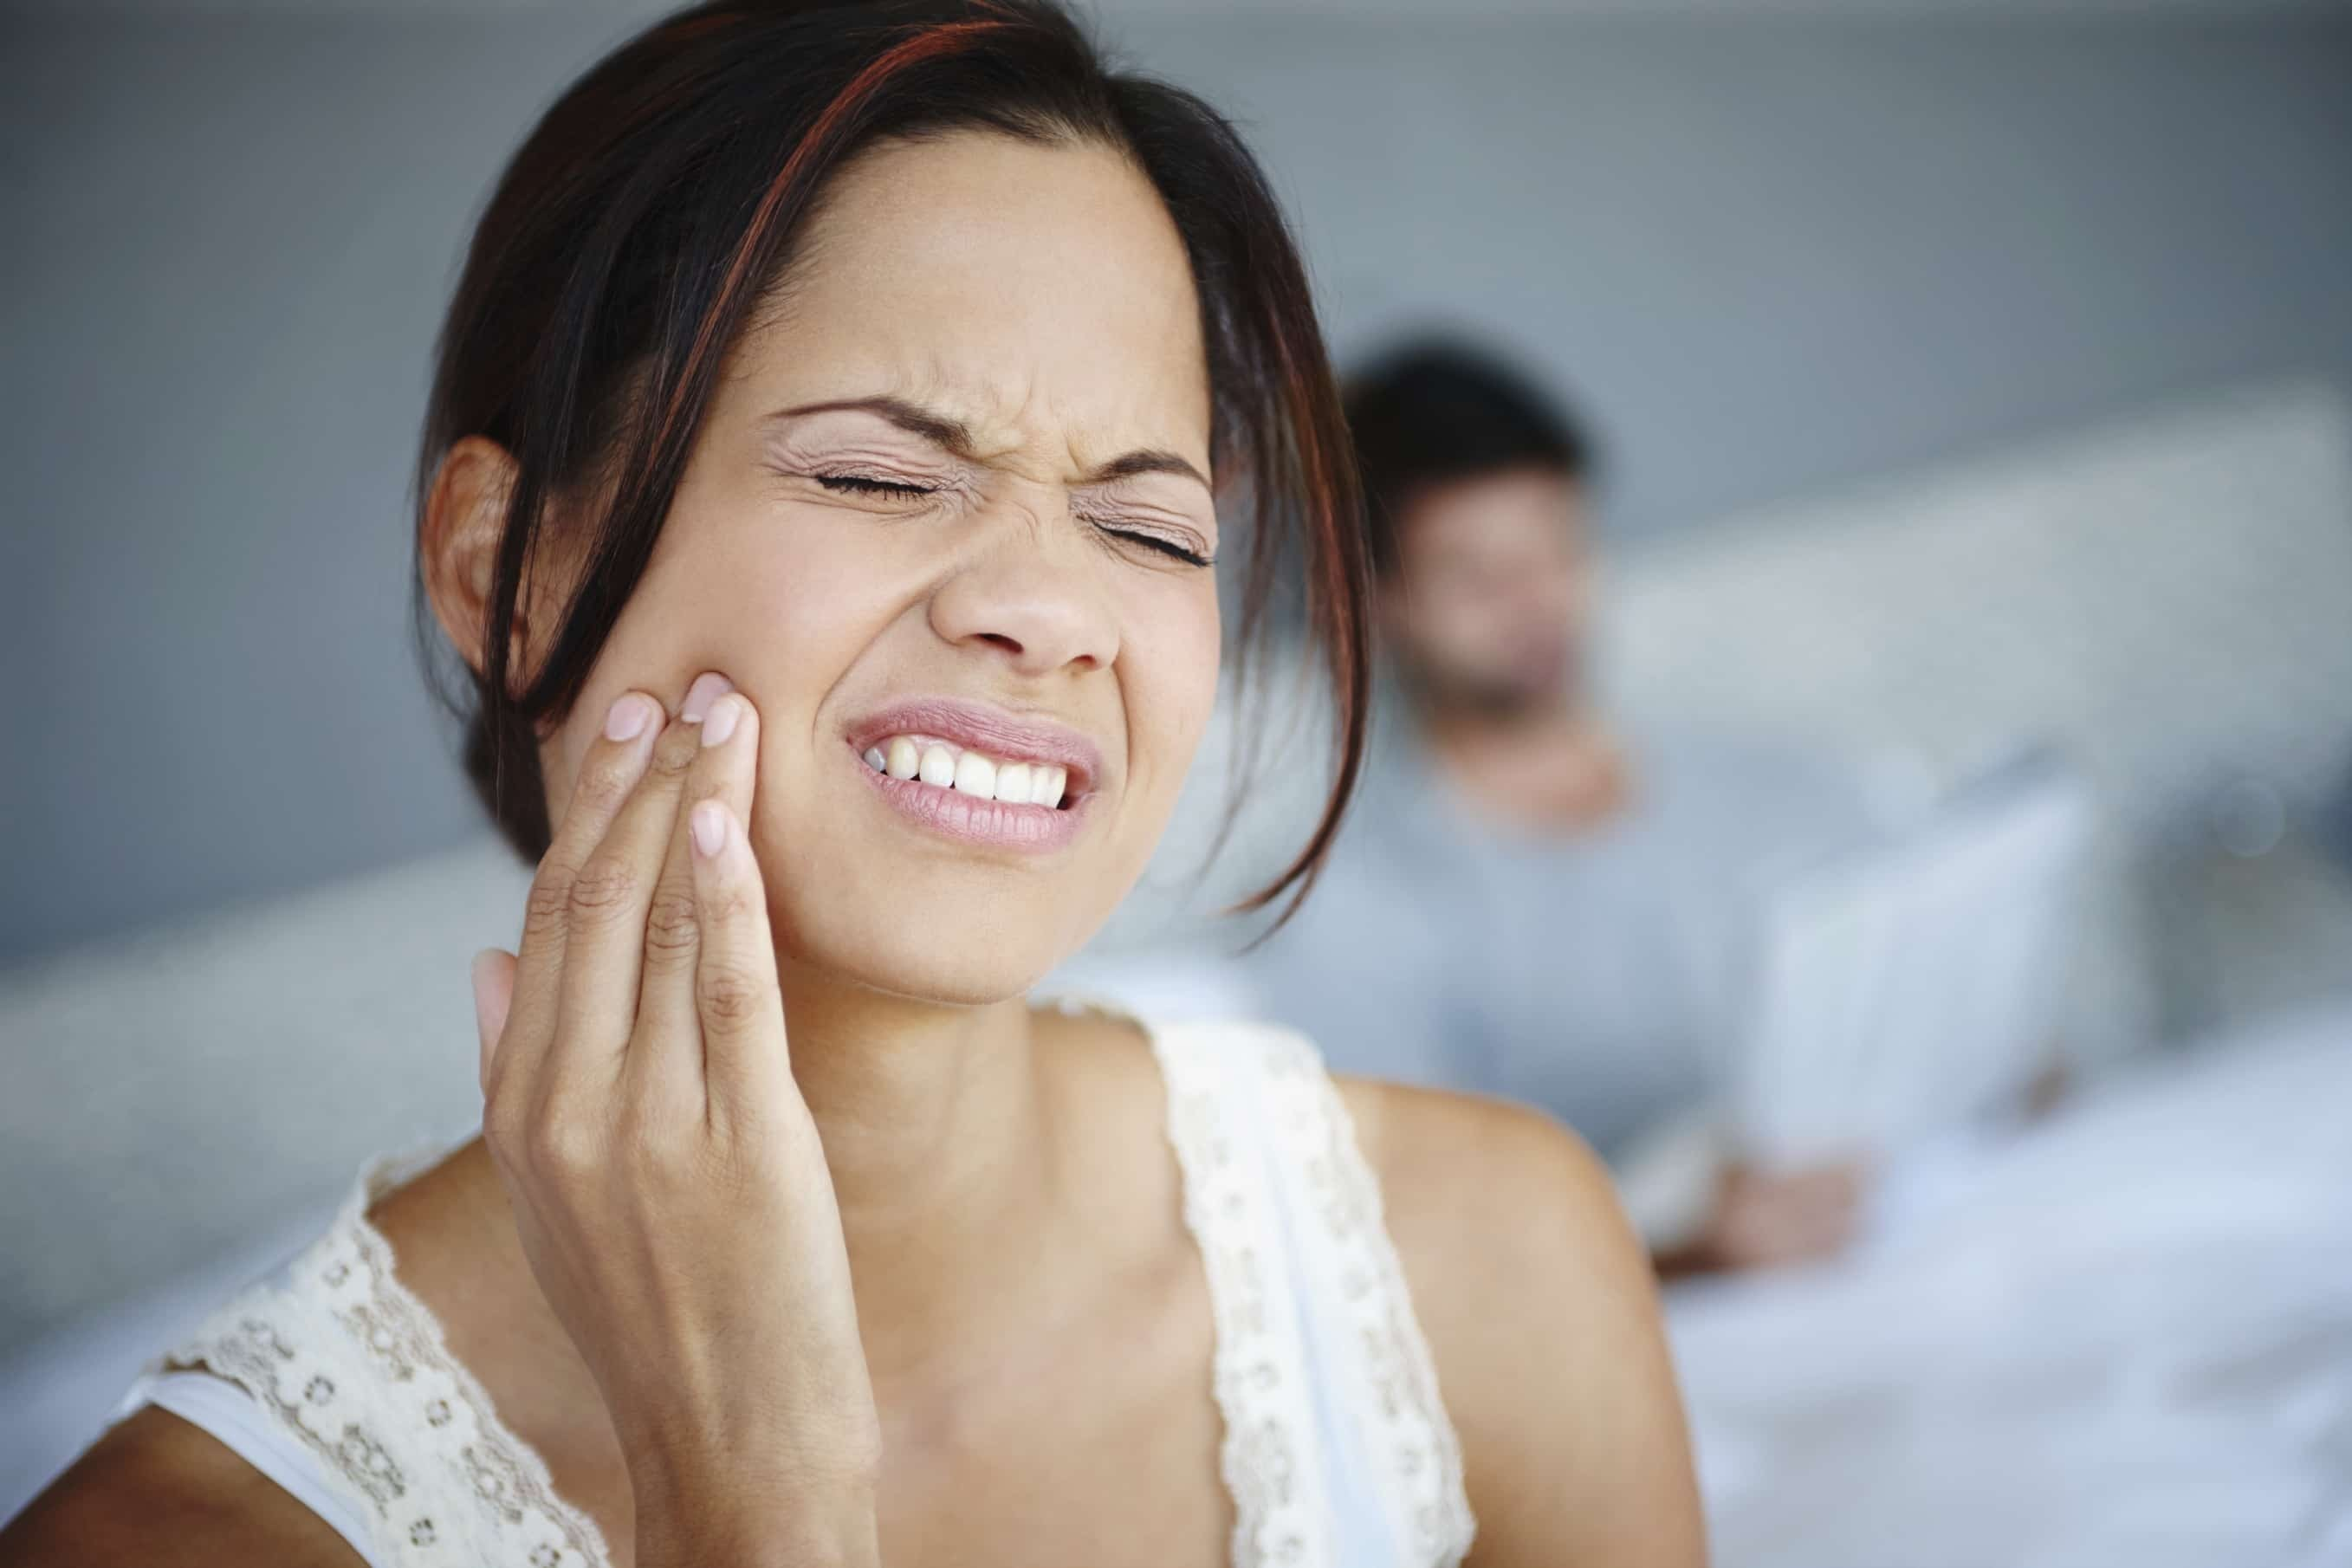 woman with pained expression touching her face.